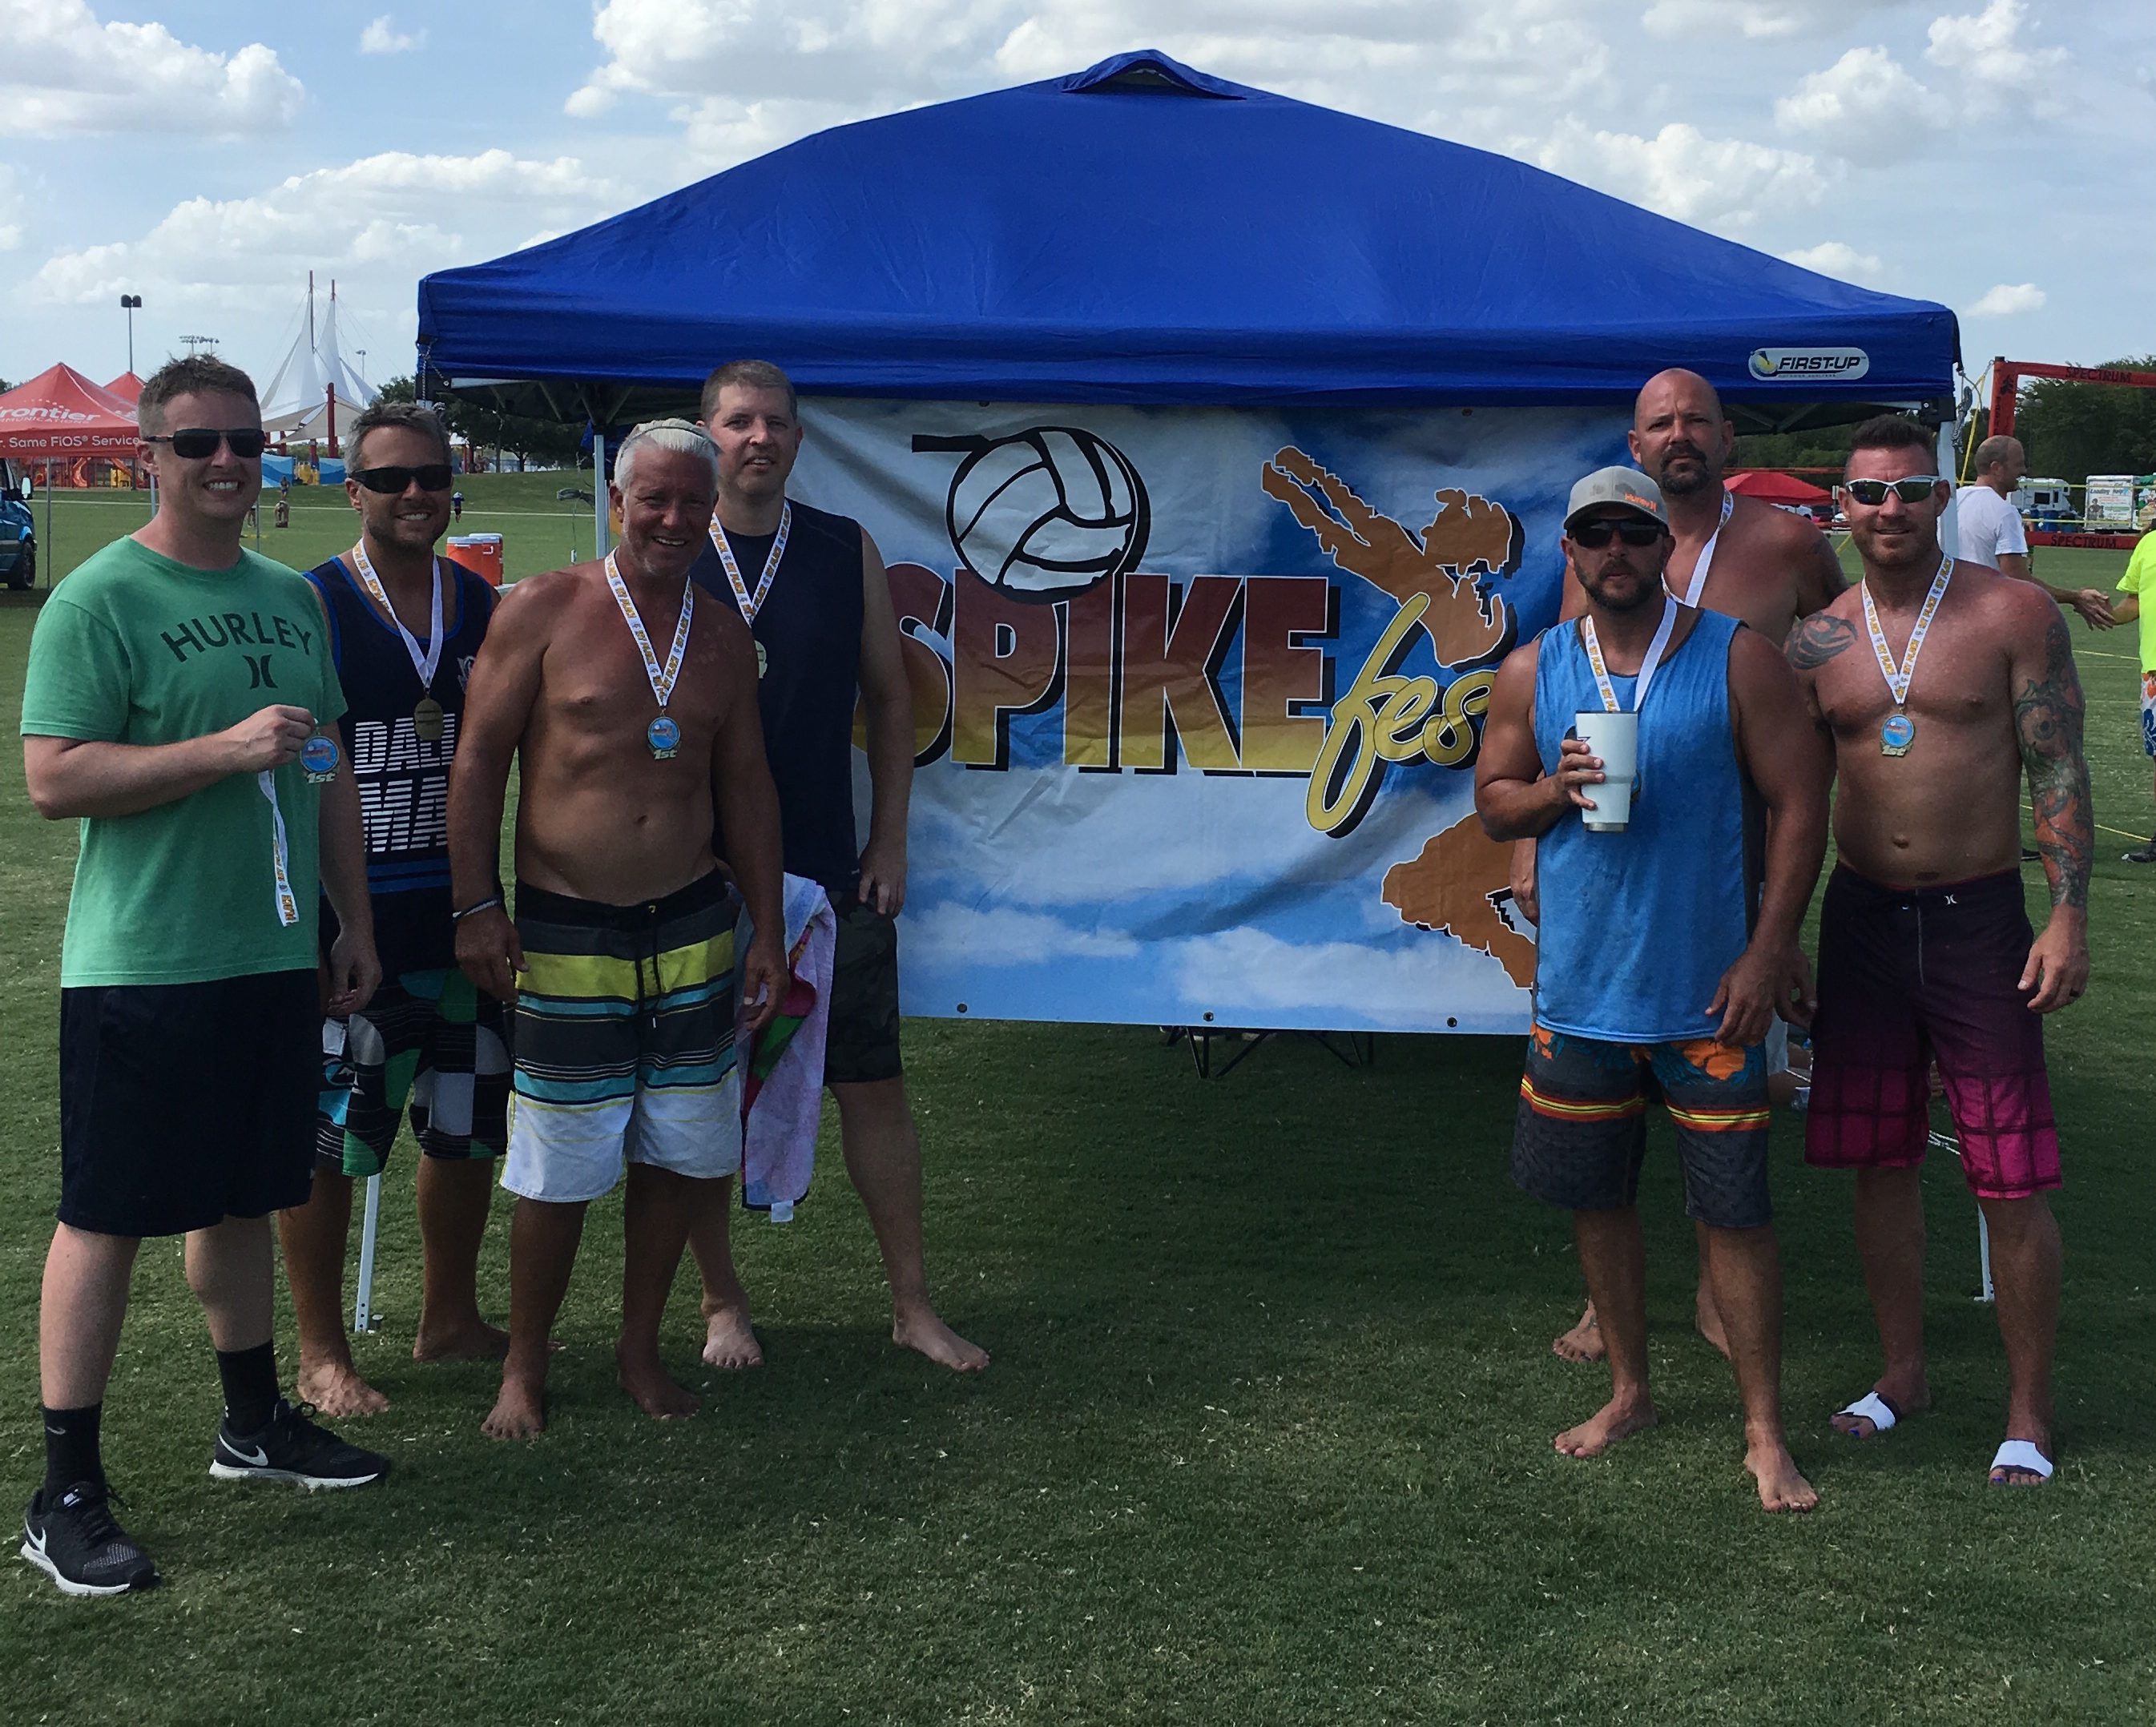 Spikefest 2016 Winners Gallery